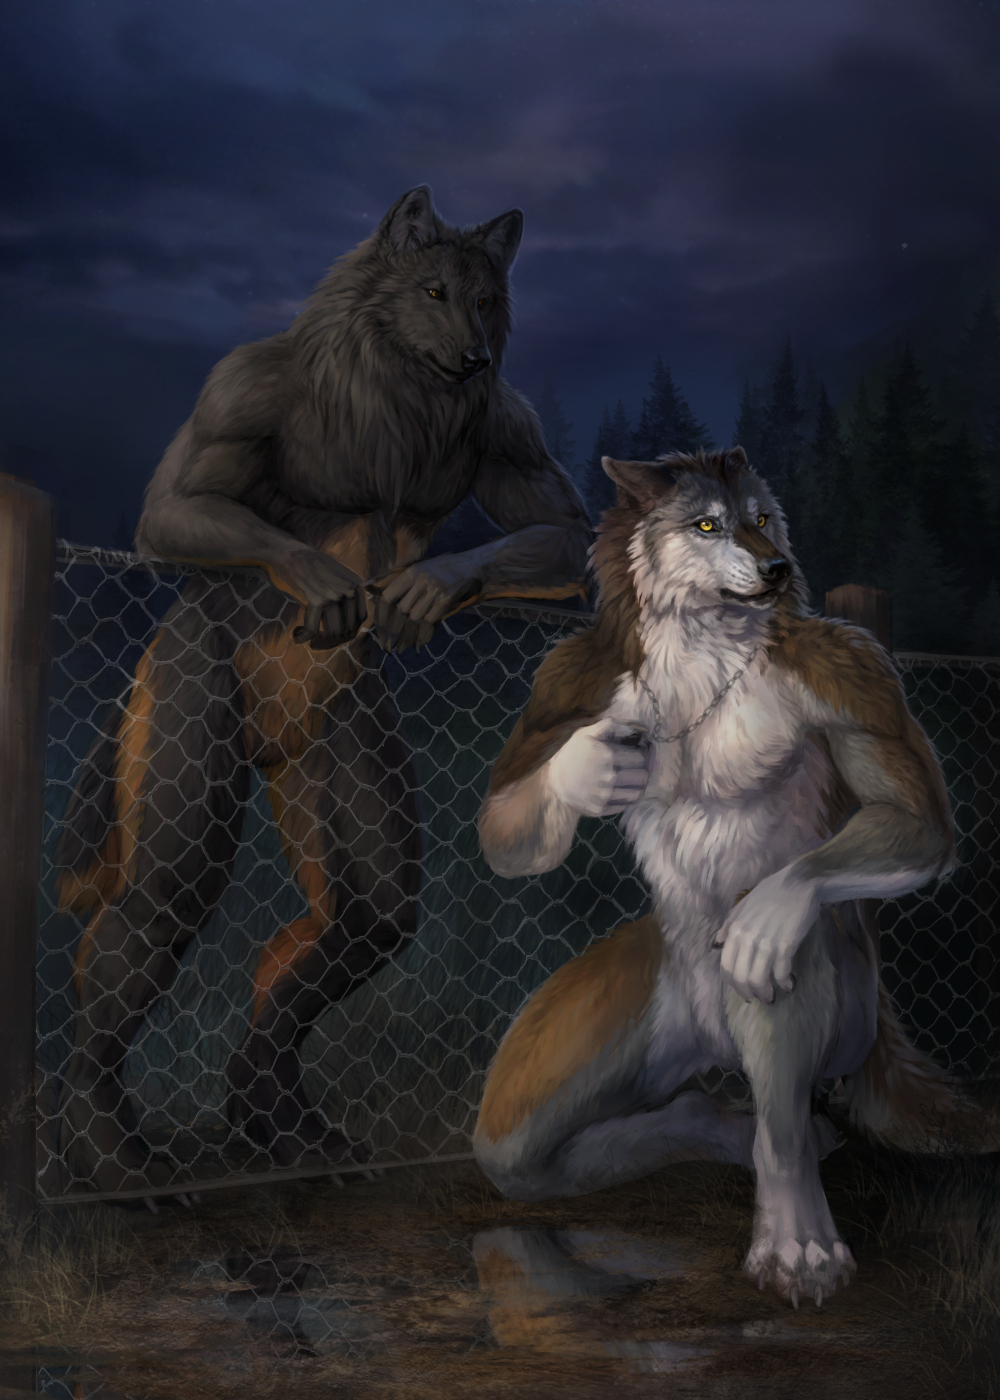 Werewolf Tale II by Wolnir                              Acting as a guide for Alex, this demostrates the general theme for the sequel to Werewolf Tale.                                                          Alex still being unsure of his new-found abilities and Shane coming to terms with his need to mentor Alex in how to properly hunt and survive.